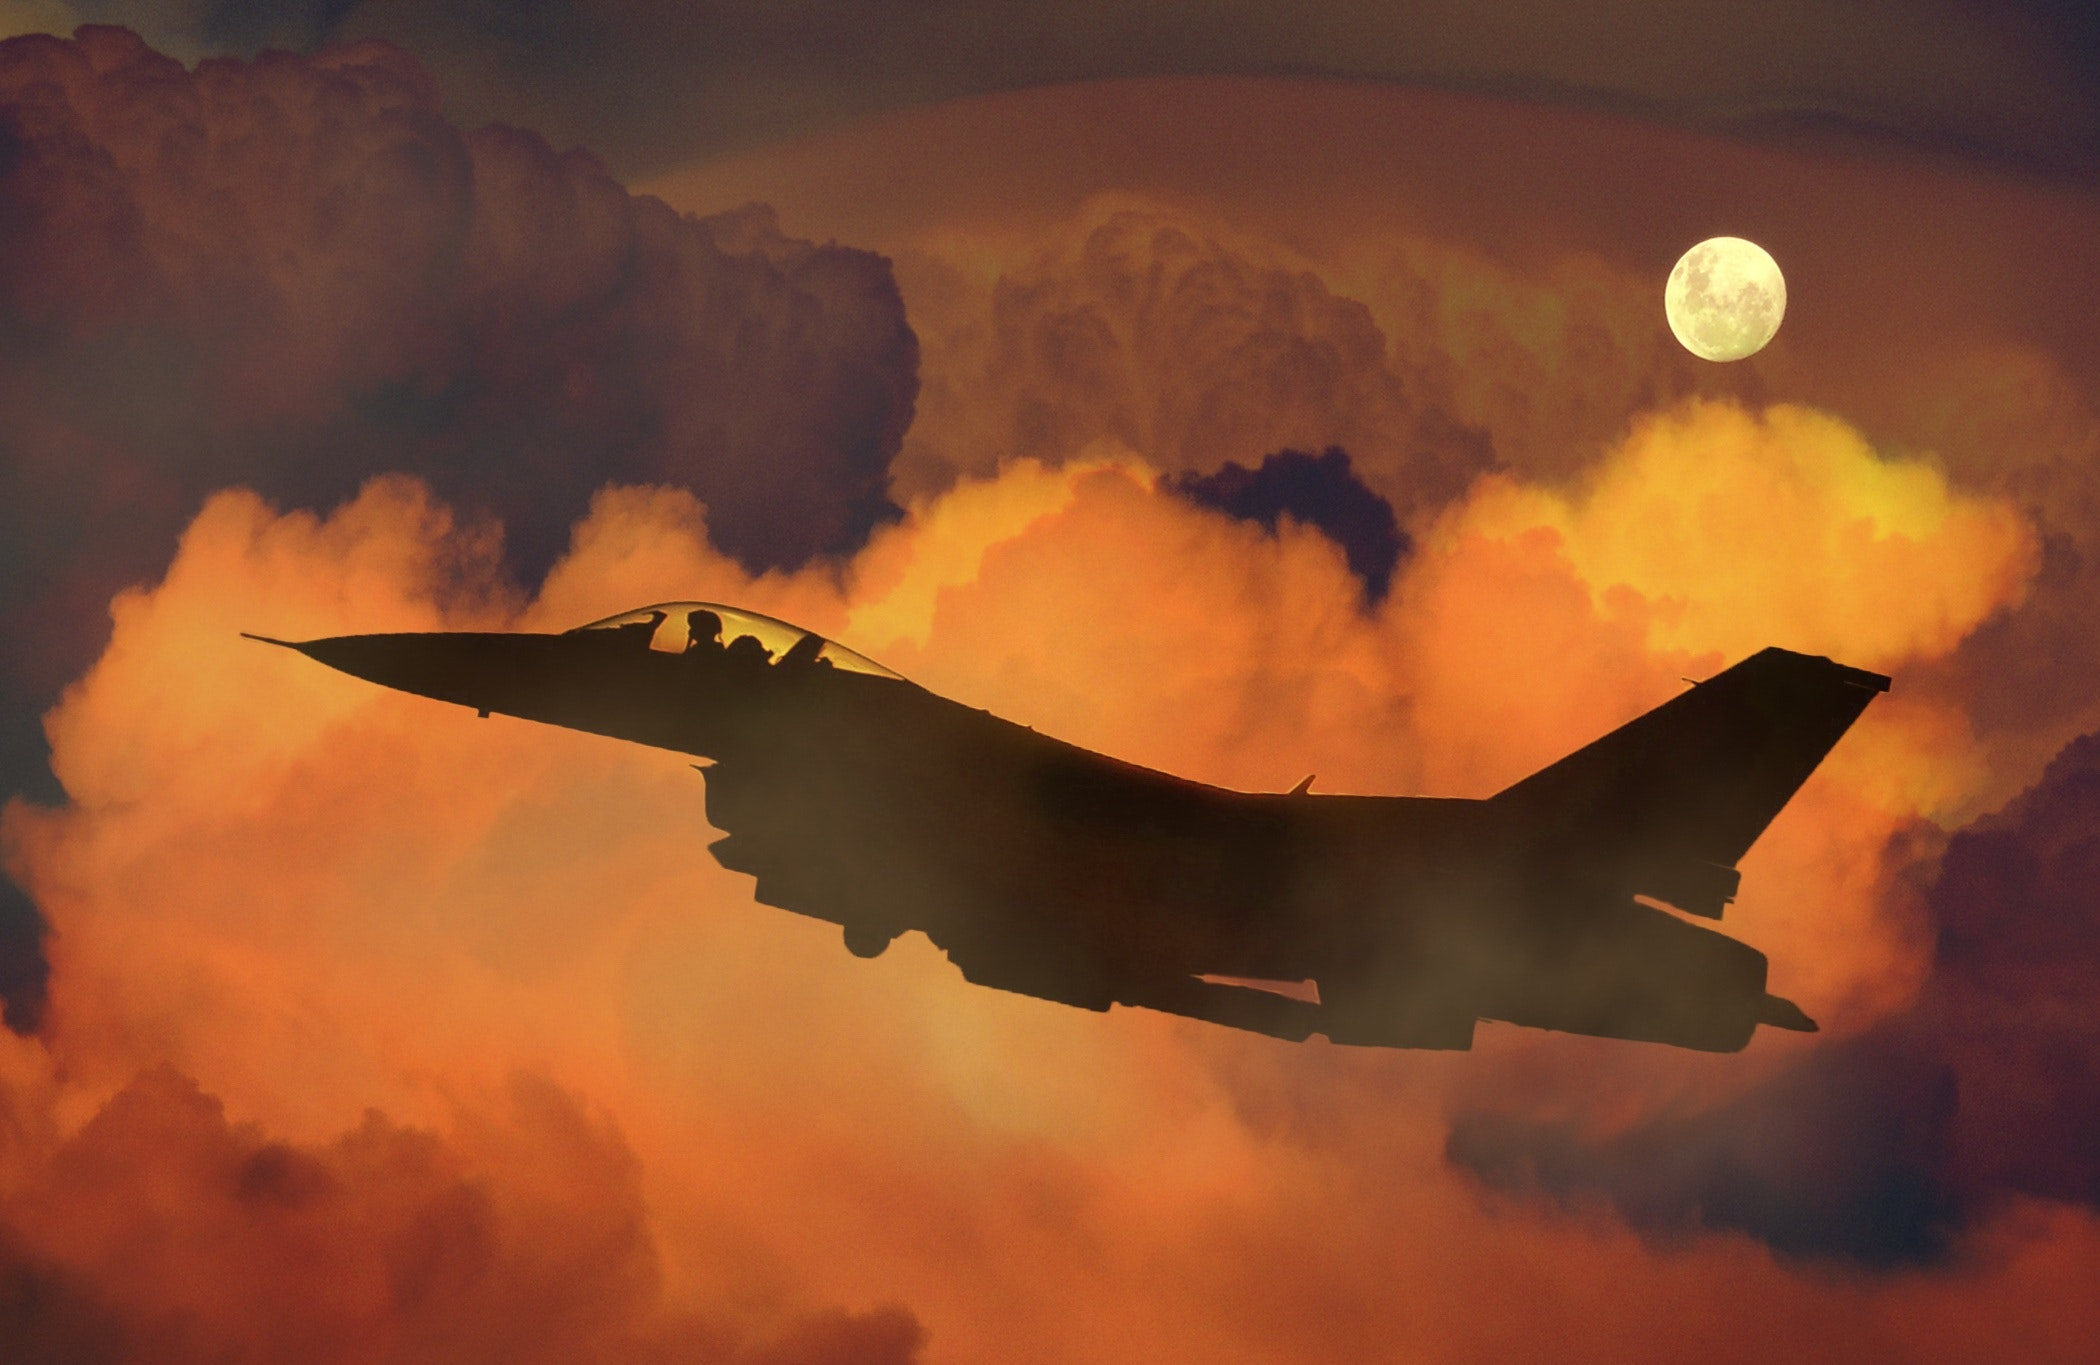 Silhouette Of Fighter Plane Flying Through Clouds  Free Stock Photo-6059